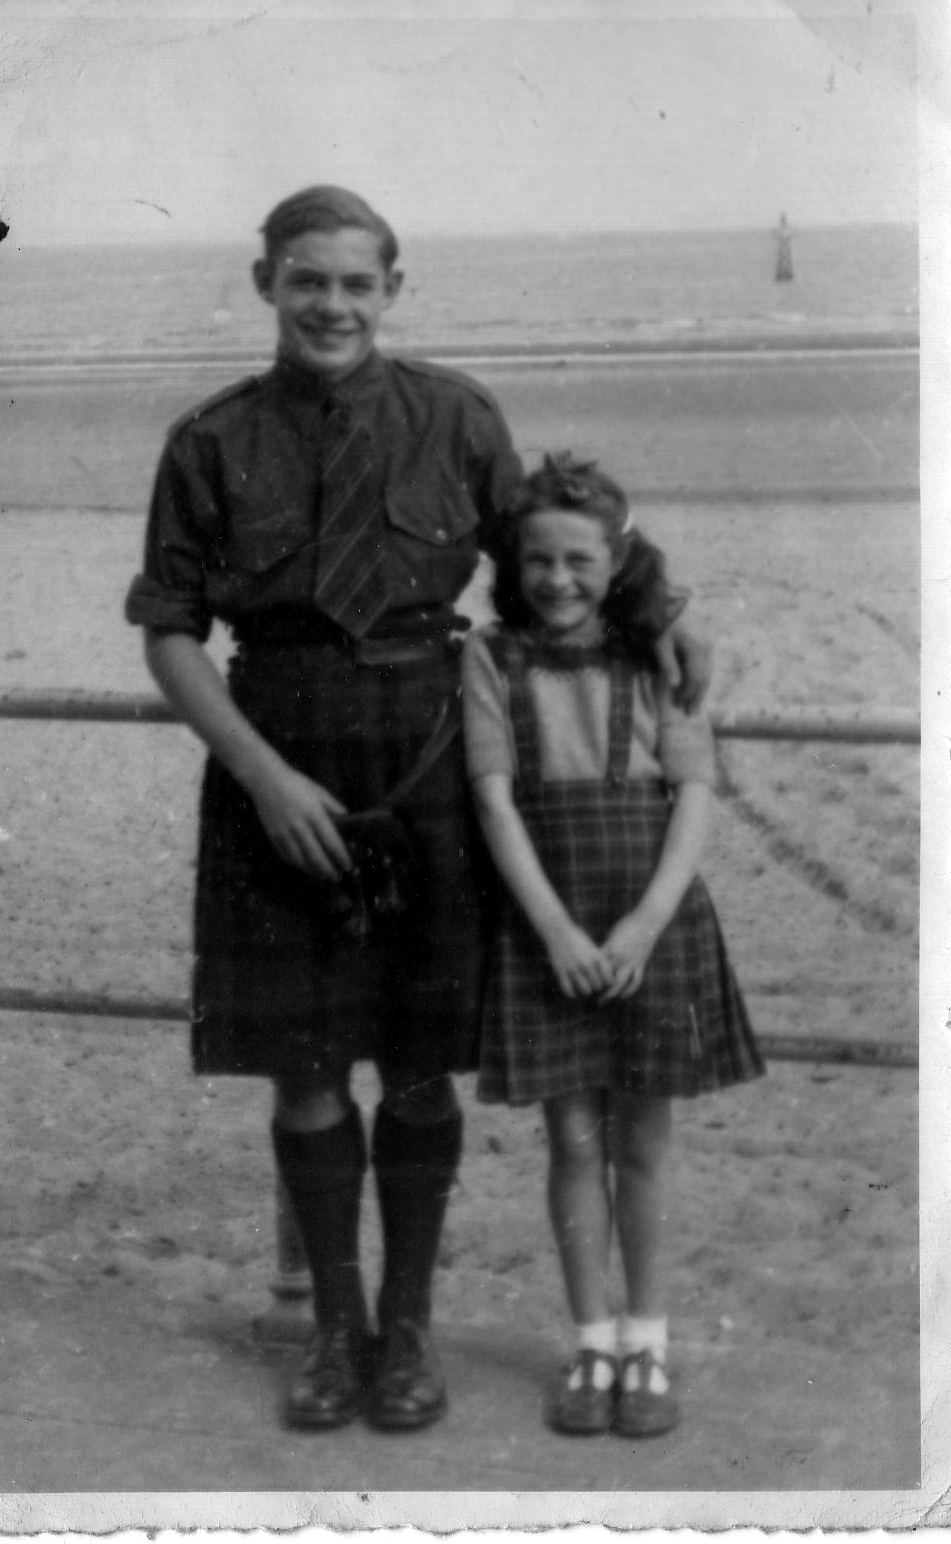 Brother And Sister On The Promenade Outside Their Home c.1950